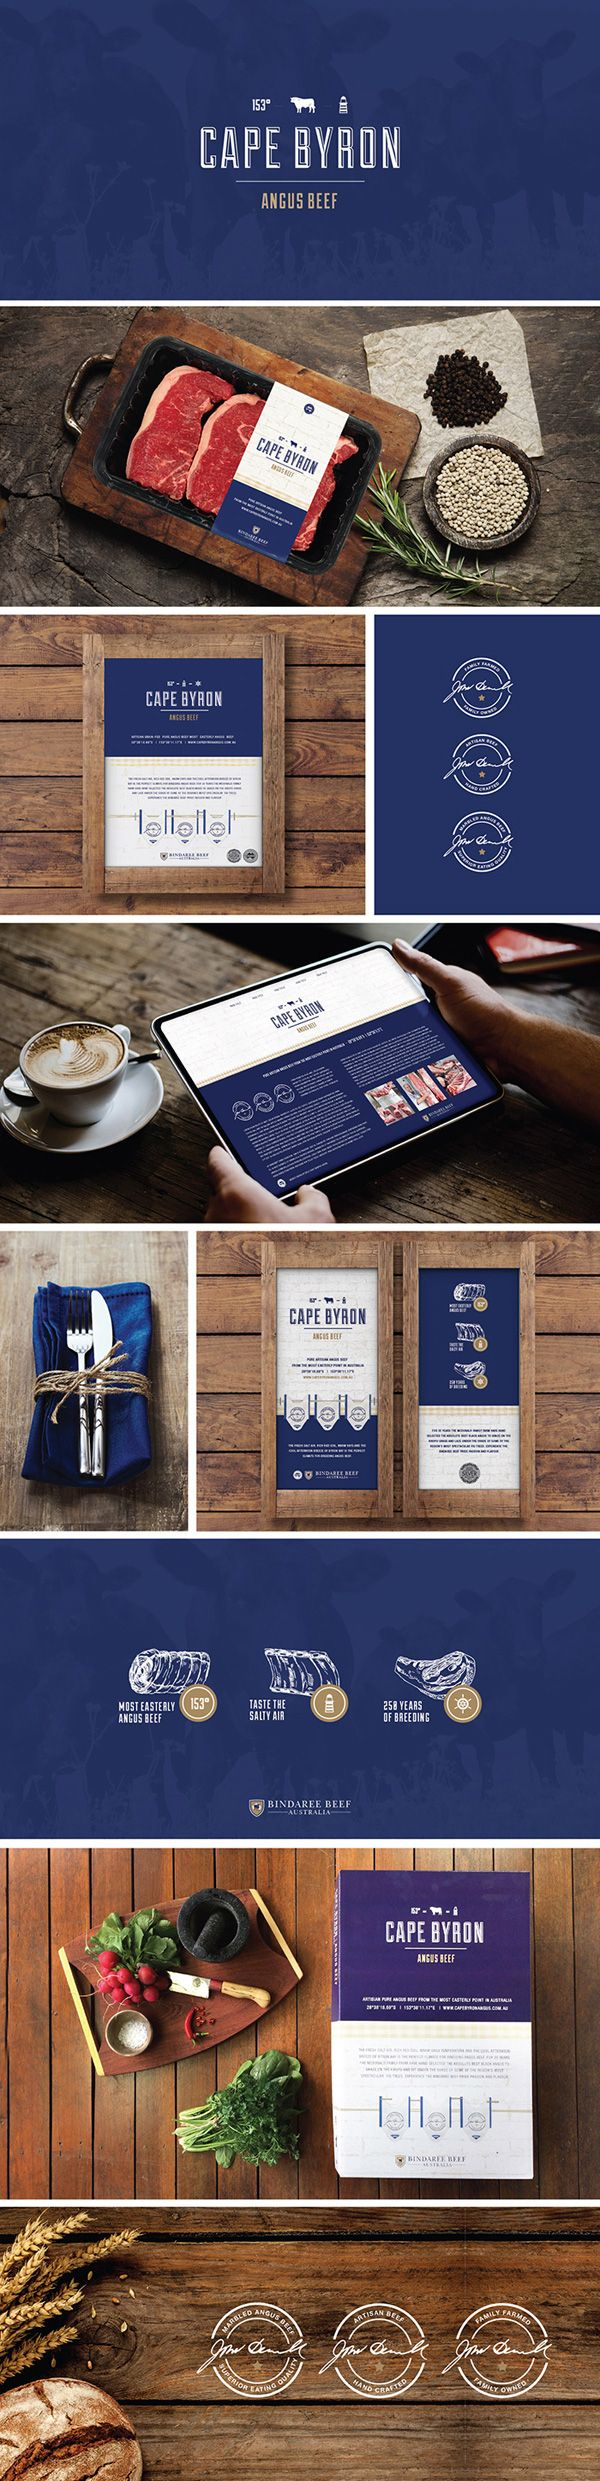 Gold Coast Graphic Design Latest Projects